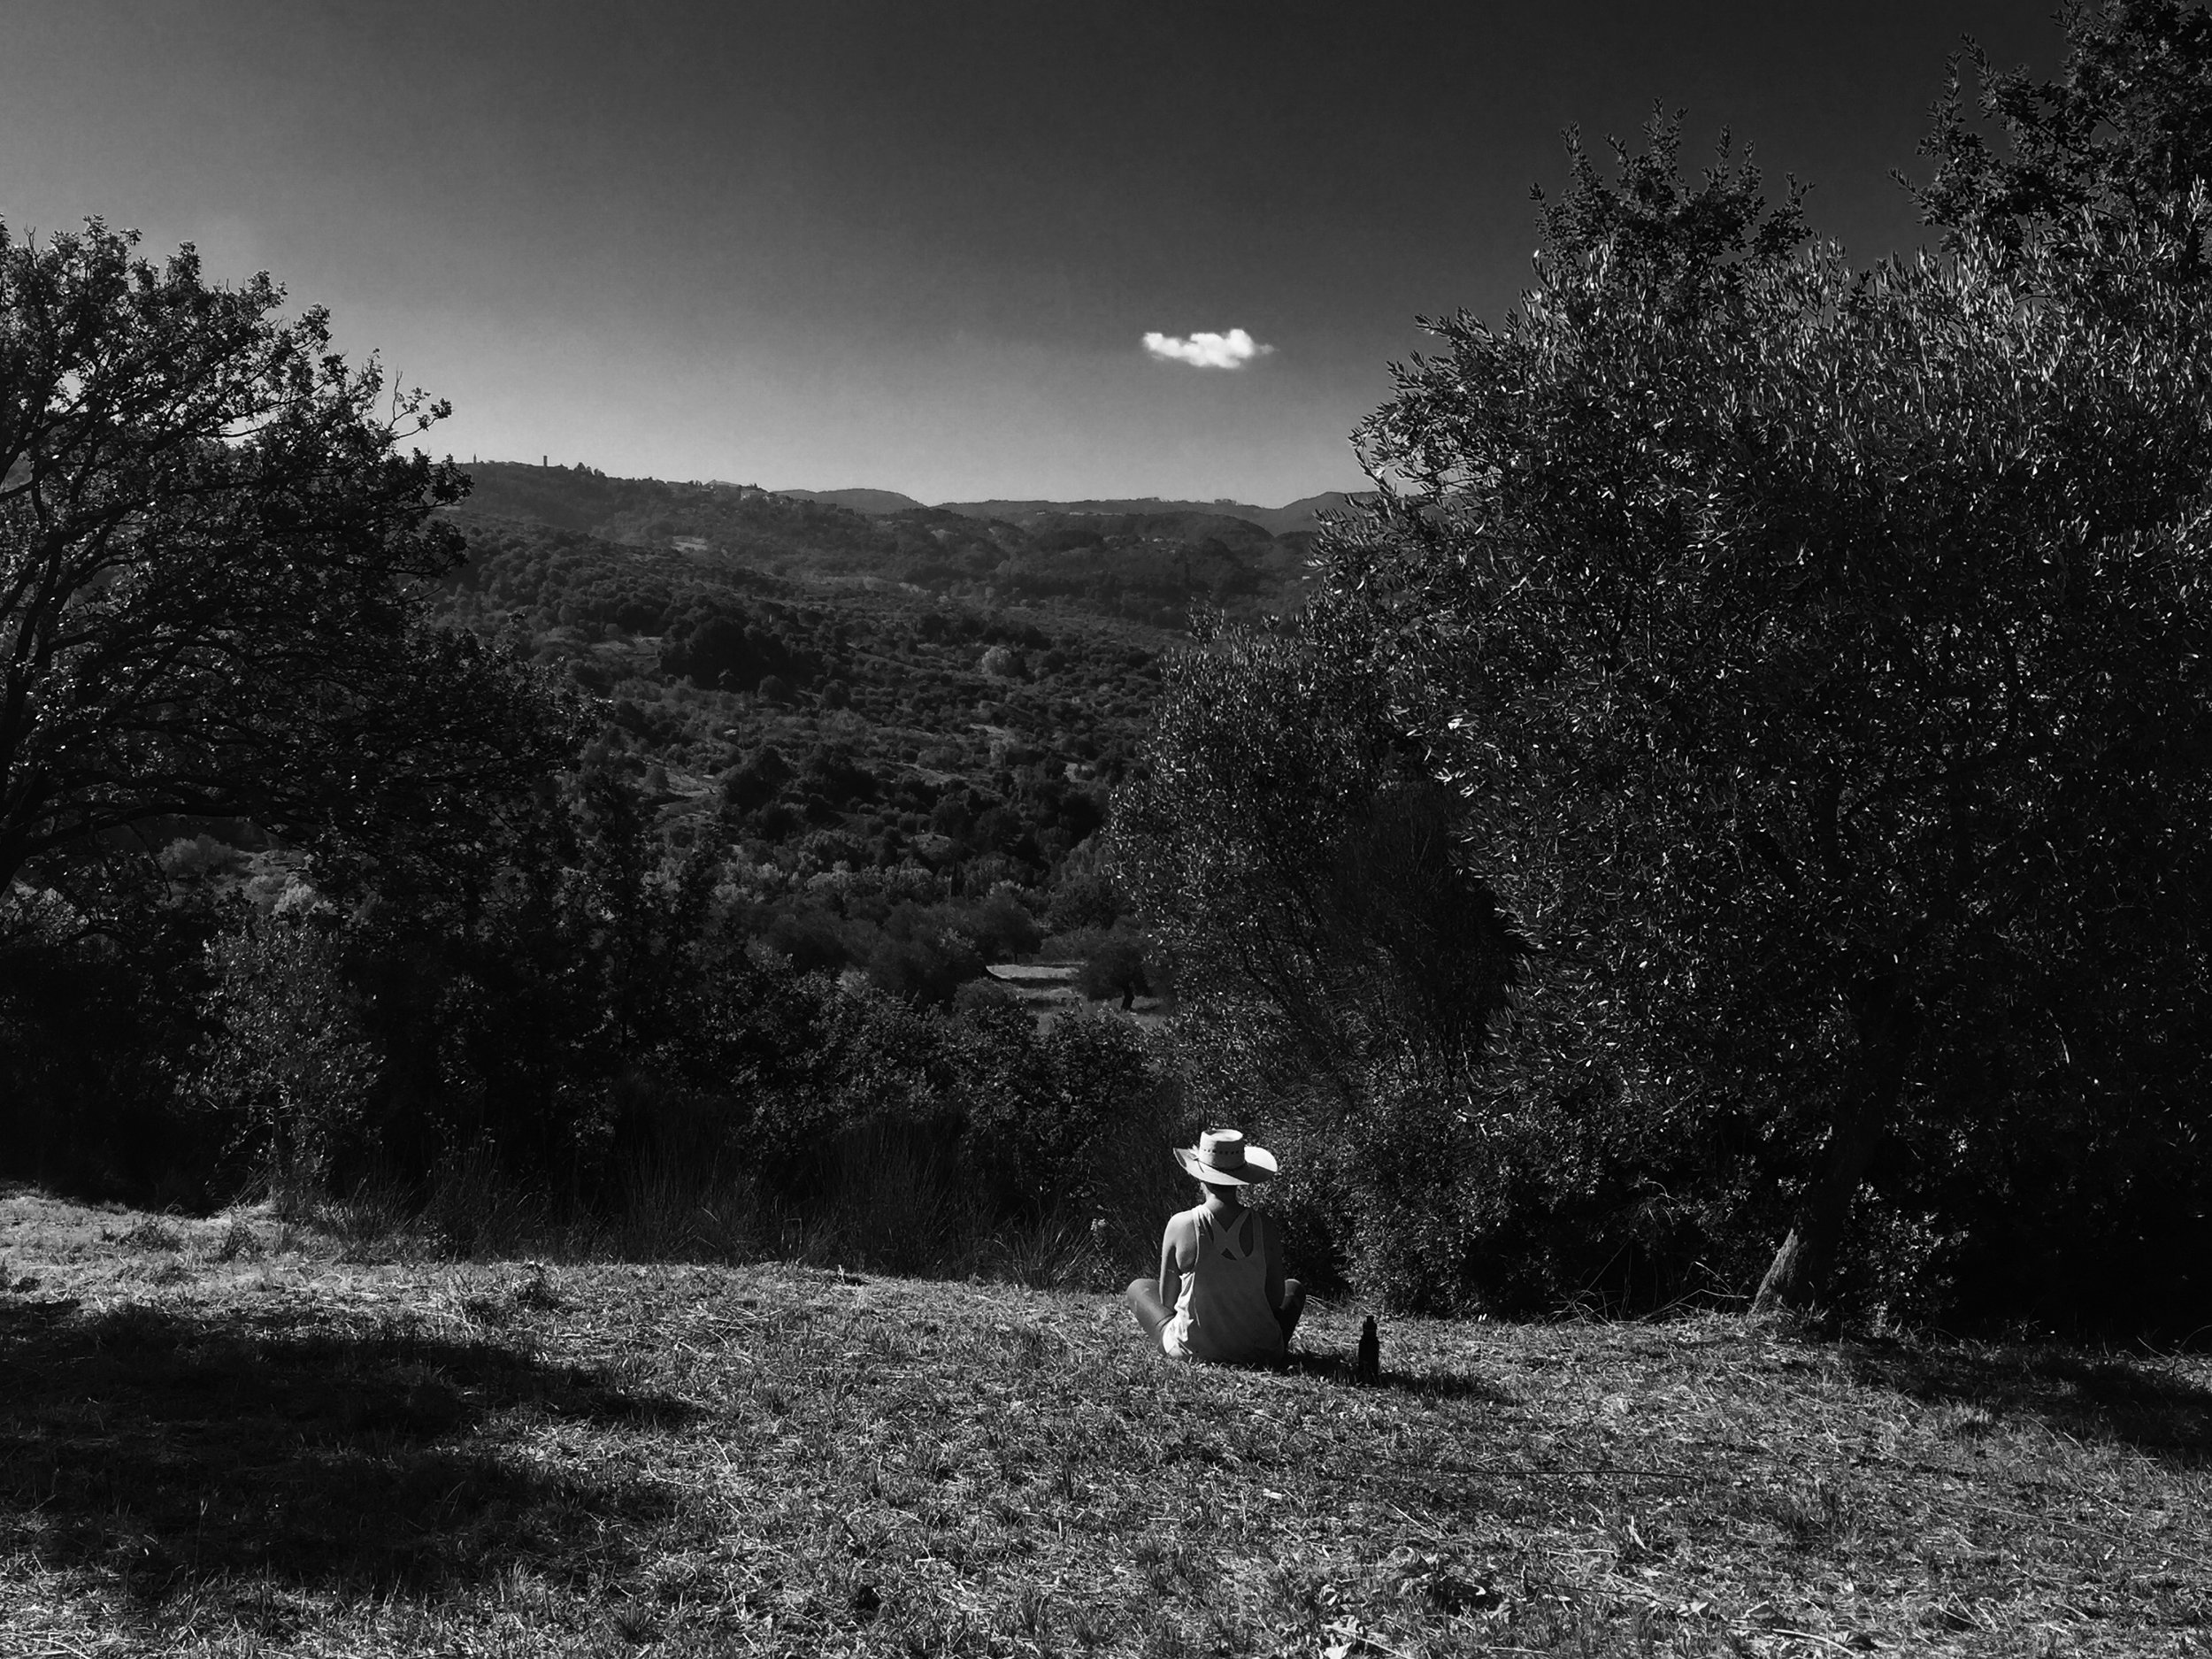 meditating-in-the-olive-groves_33282076192_o.jpg